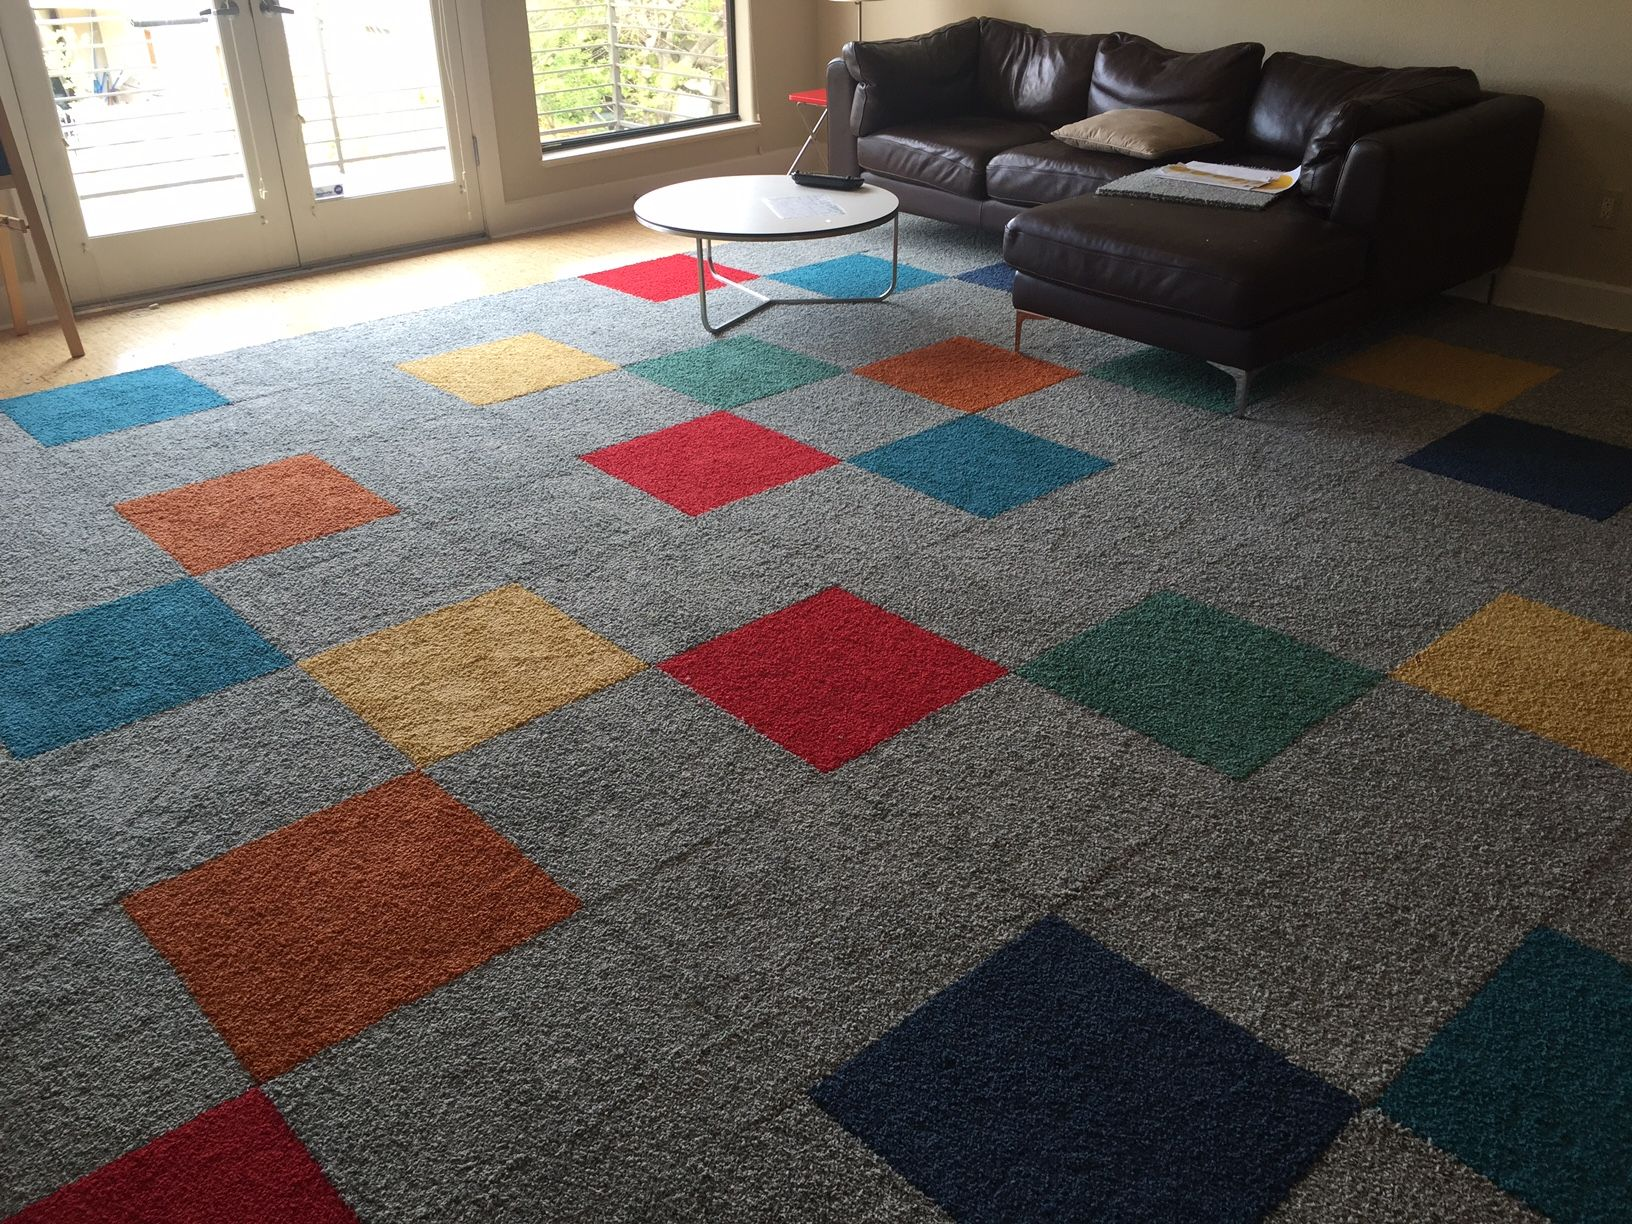 We Threw In Pops Of Color Literally Fun Plush Rug For This